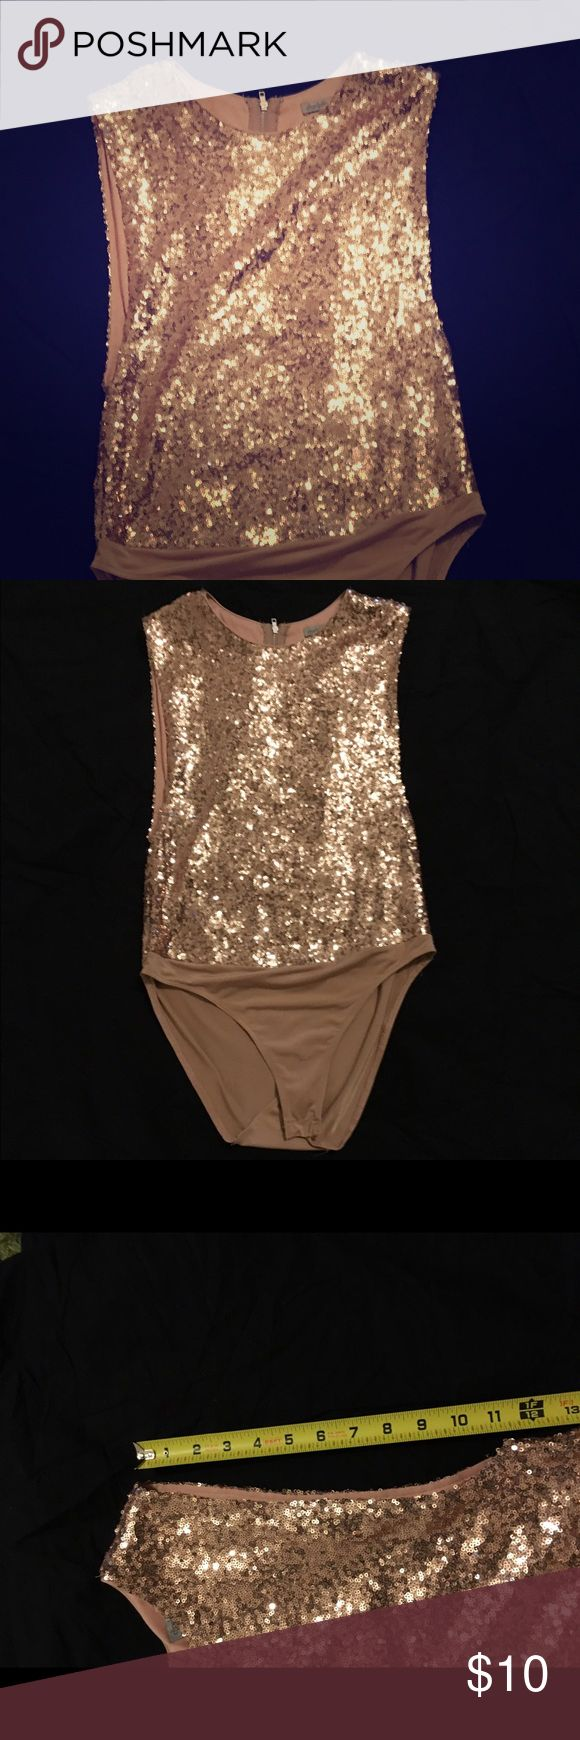 Rose gold leotard Sequence rose gold leotard size M brand Charlotte Russe . It has long openings on the side the picture with the tape measure will give you an idea how long it is . Only worn ones as a regular shirt the openings on the side look very sexy perfect for a night out or for a special event. Feel free to ask any questions!💕 Charlotte Russe Tops Tees - Short Sleeve